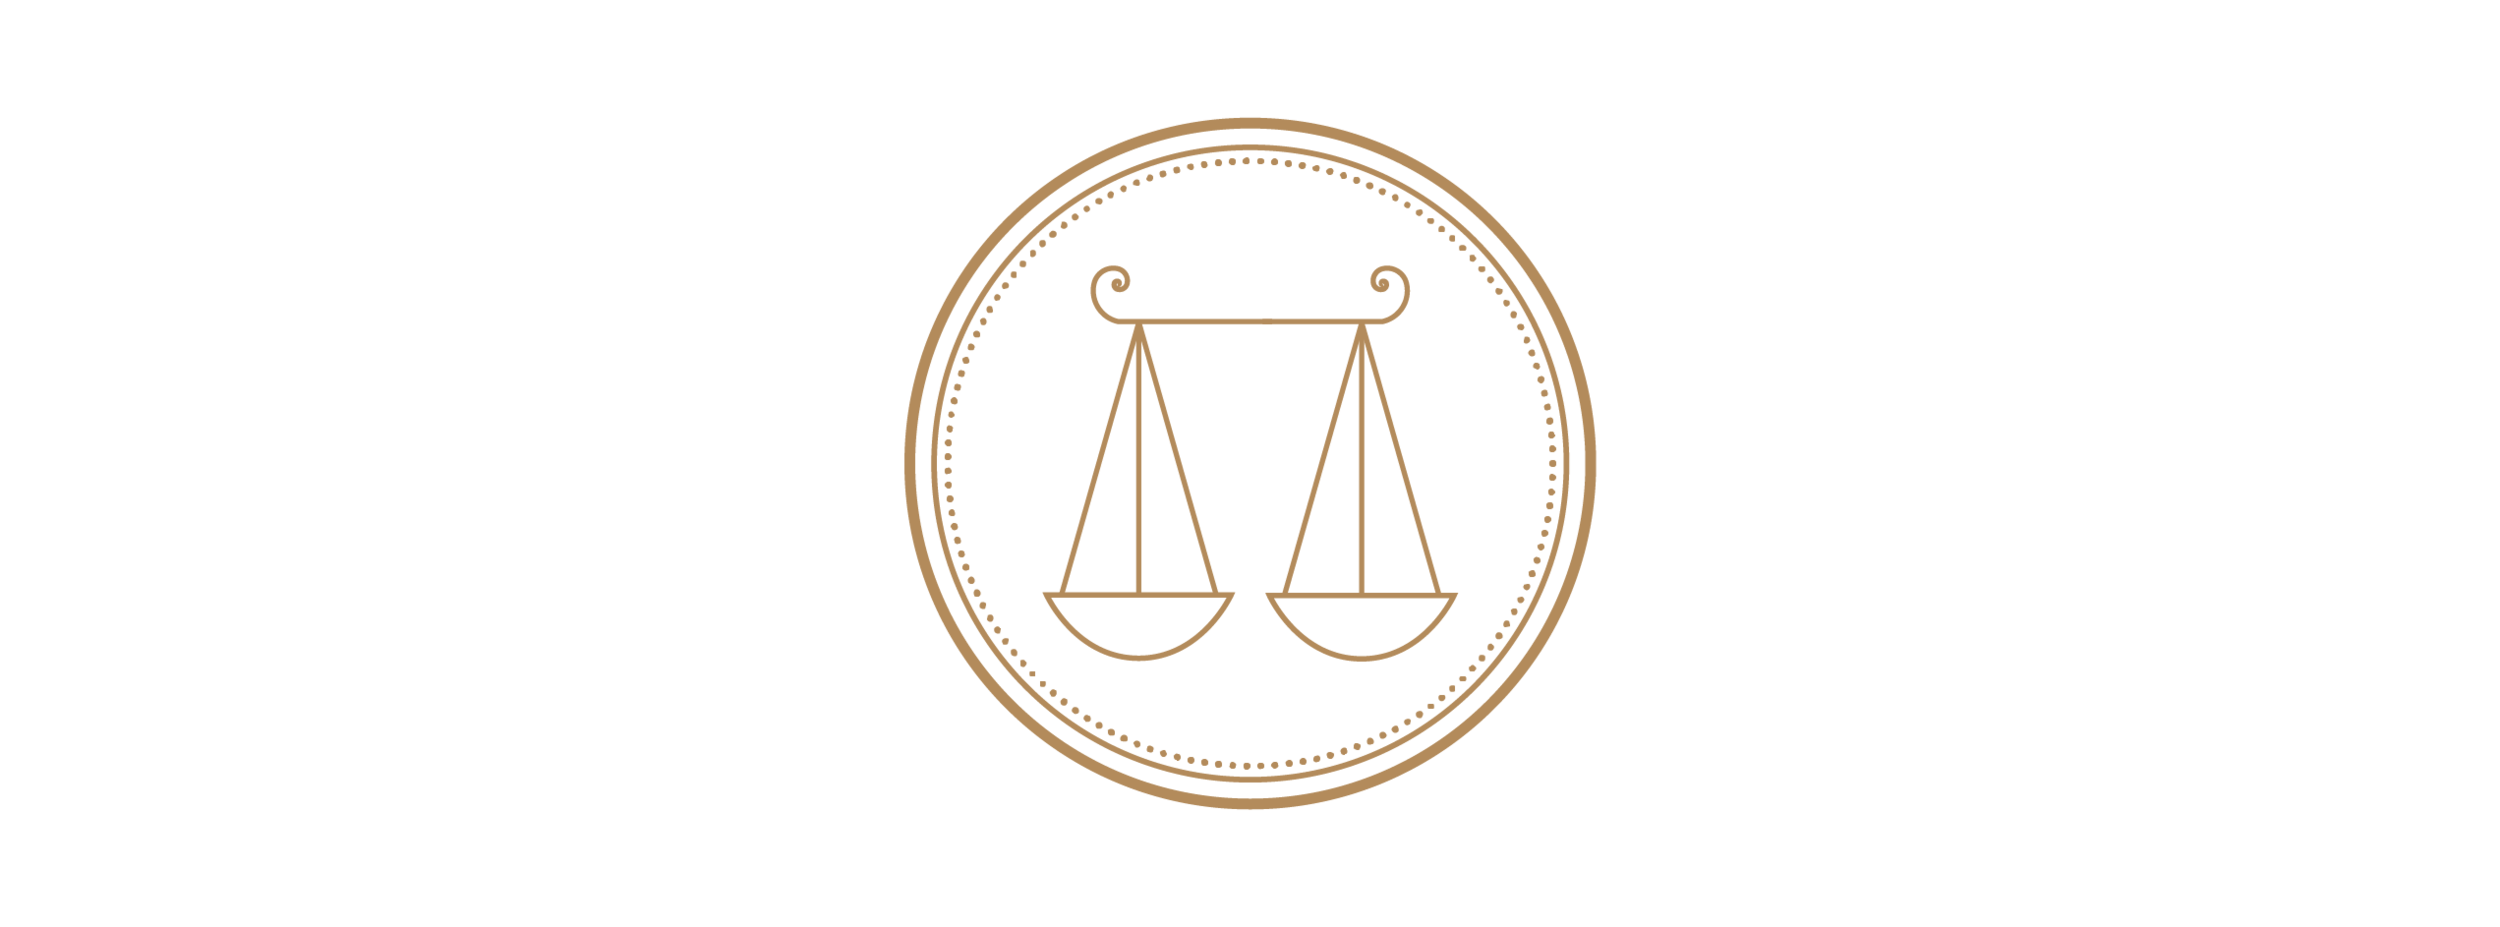 OTHER MATTERS -  We handle a variety of other matters including wills, probate/estates, power of attorney, employment, business, traffic tickets, & evictions. No matter what type of case, we will fiercely advocate for the best possible outcome